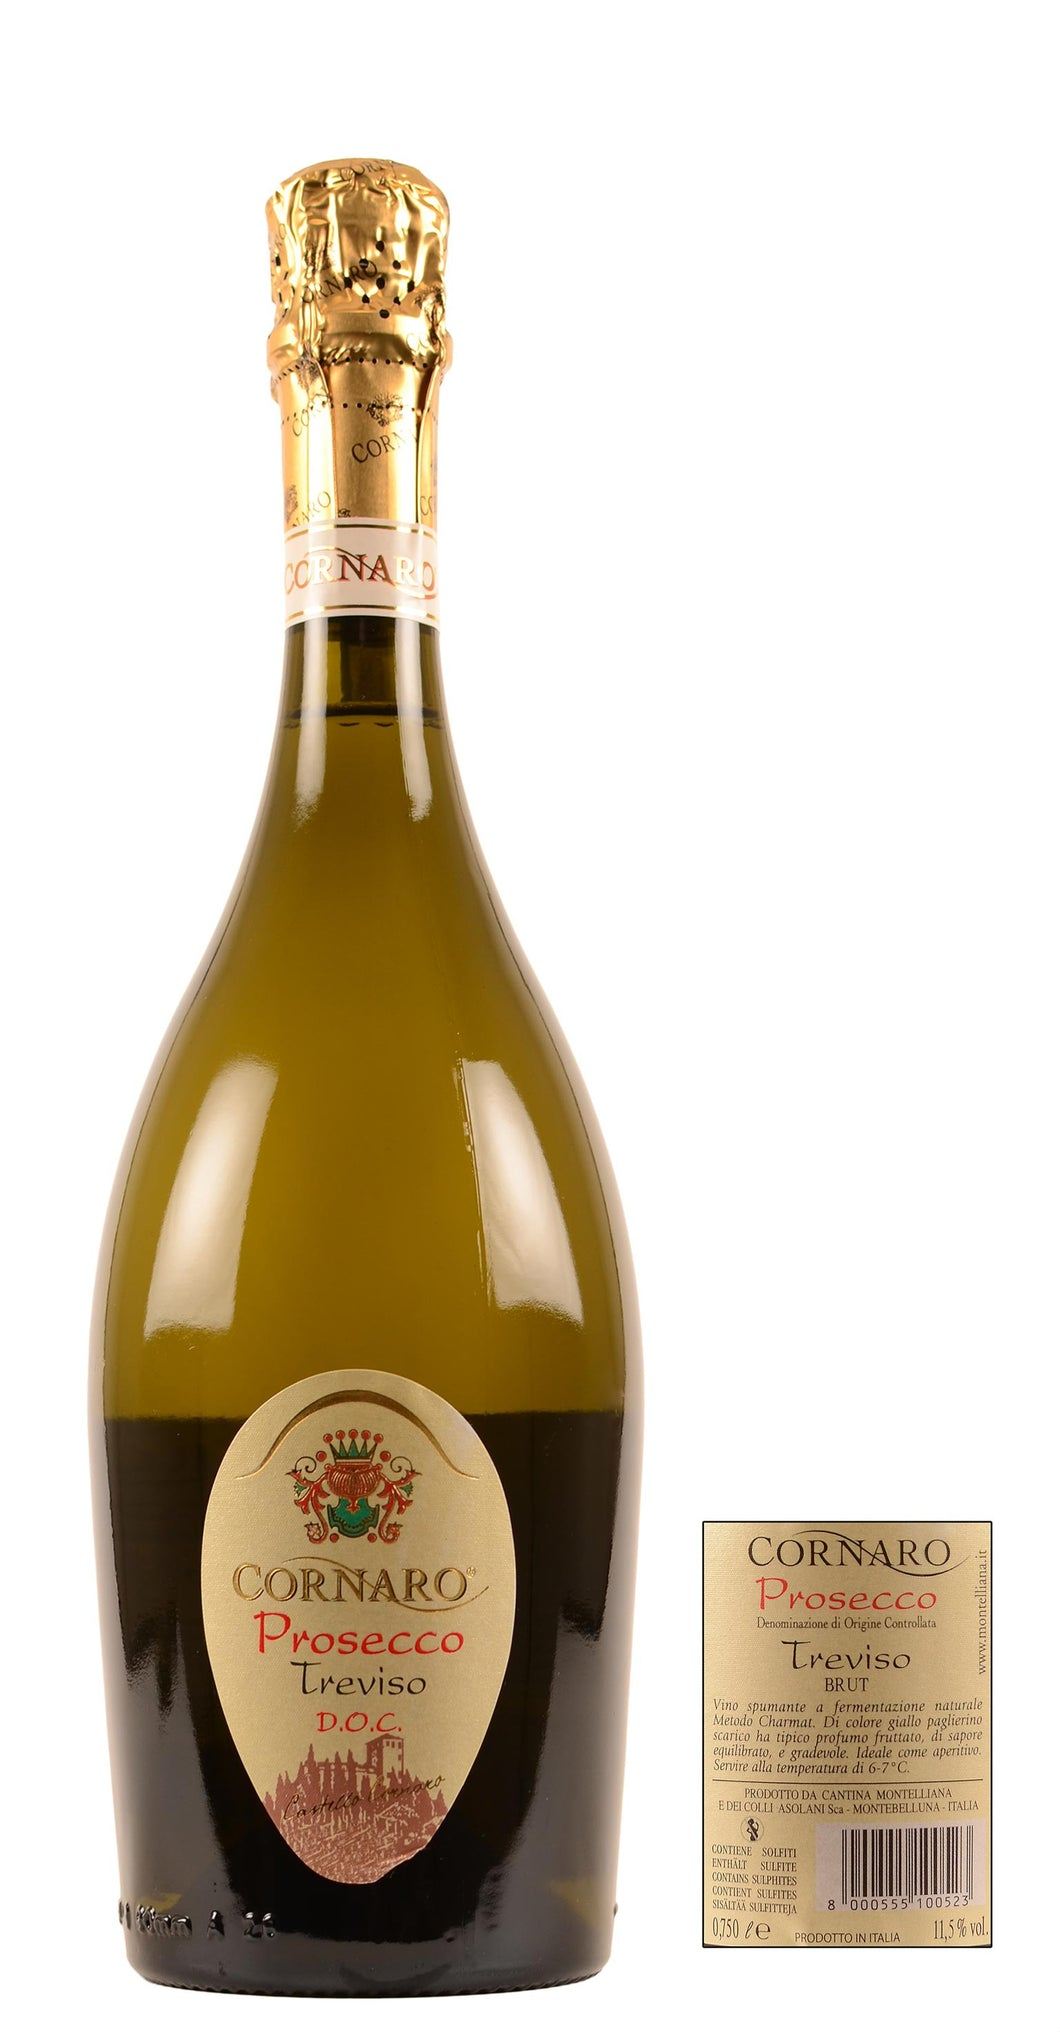 Cornaro Prosecco NV - Network Wines